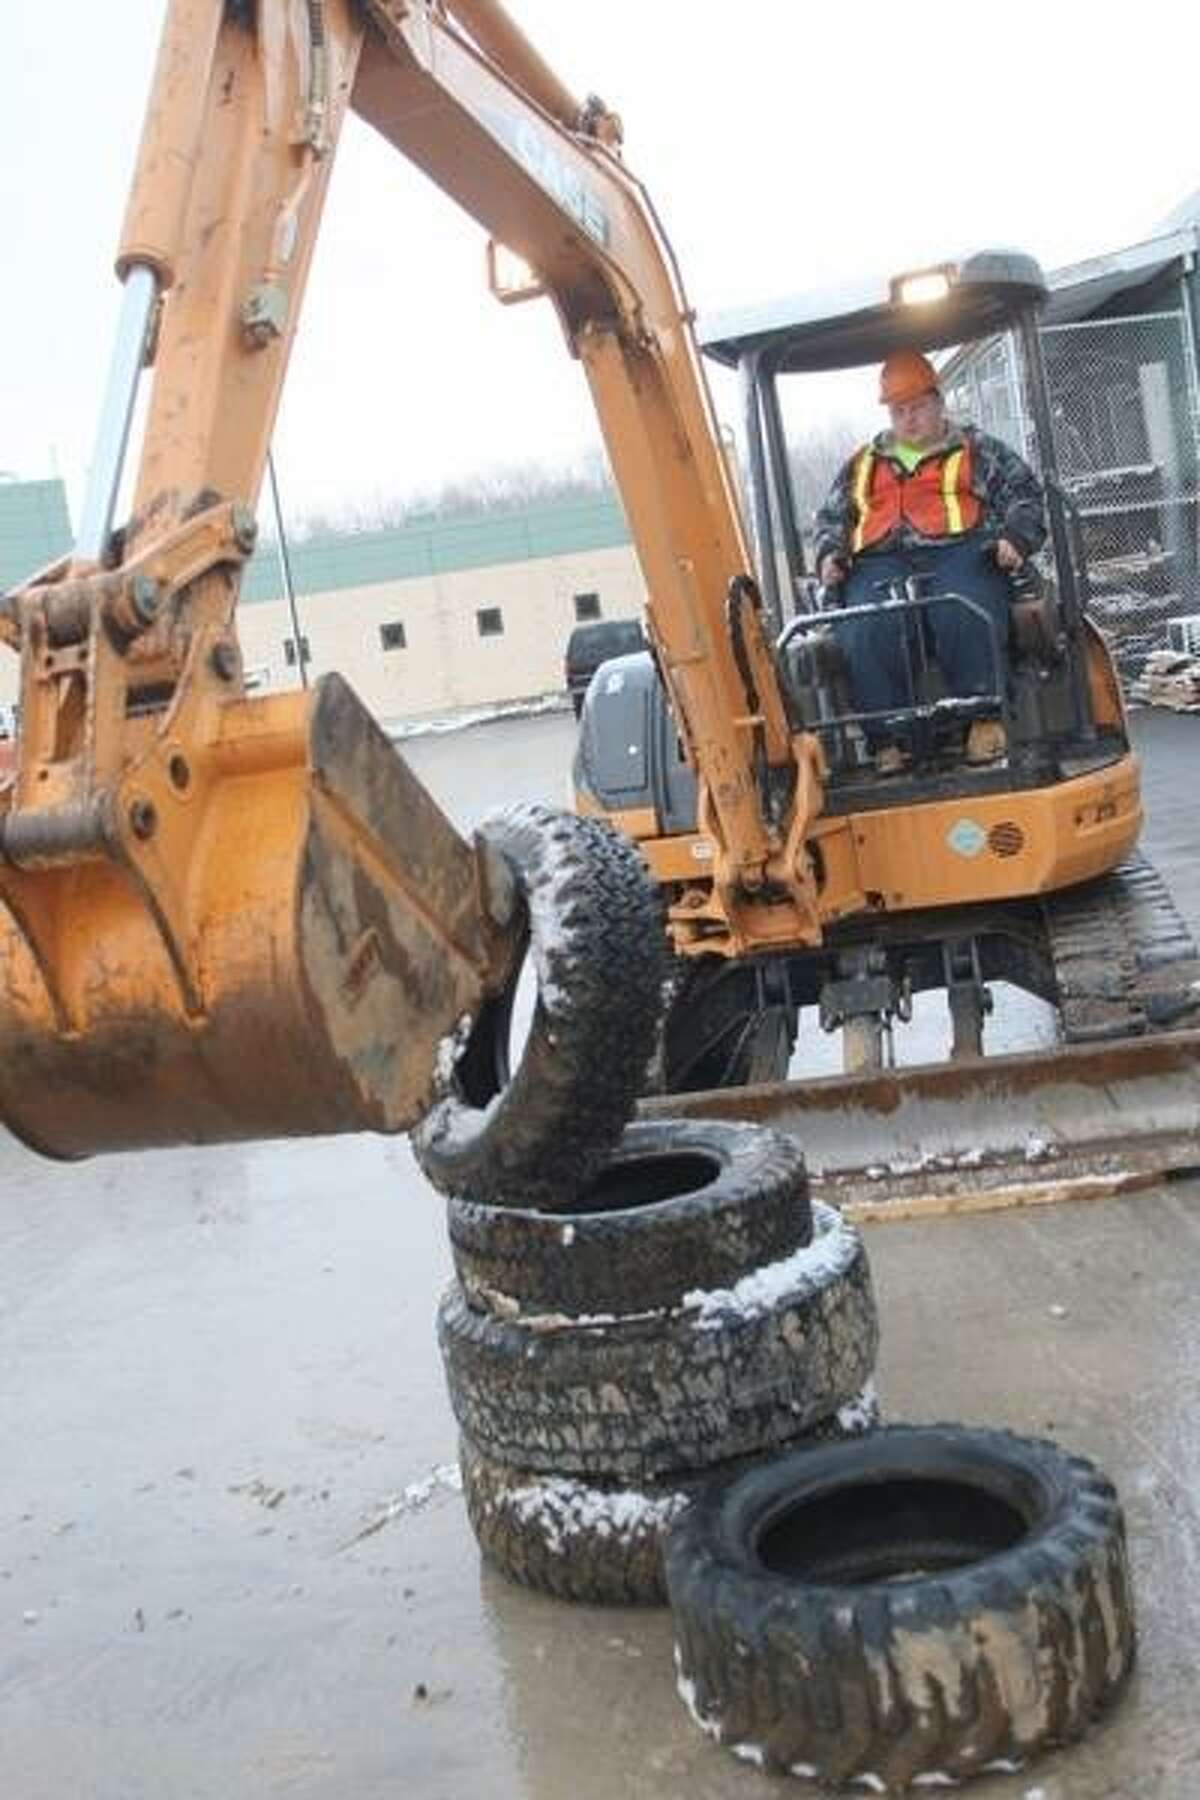 John Haeger @OneidaPhoto on Twitter/Oneida Daily Dispatch Alexander Kirt of Camden shows his heavy equipment operating skills as he stacks tires during the Madison-Oneida BOCES open house in Verona on Wednesday, March 13, 2013